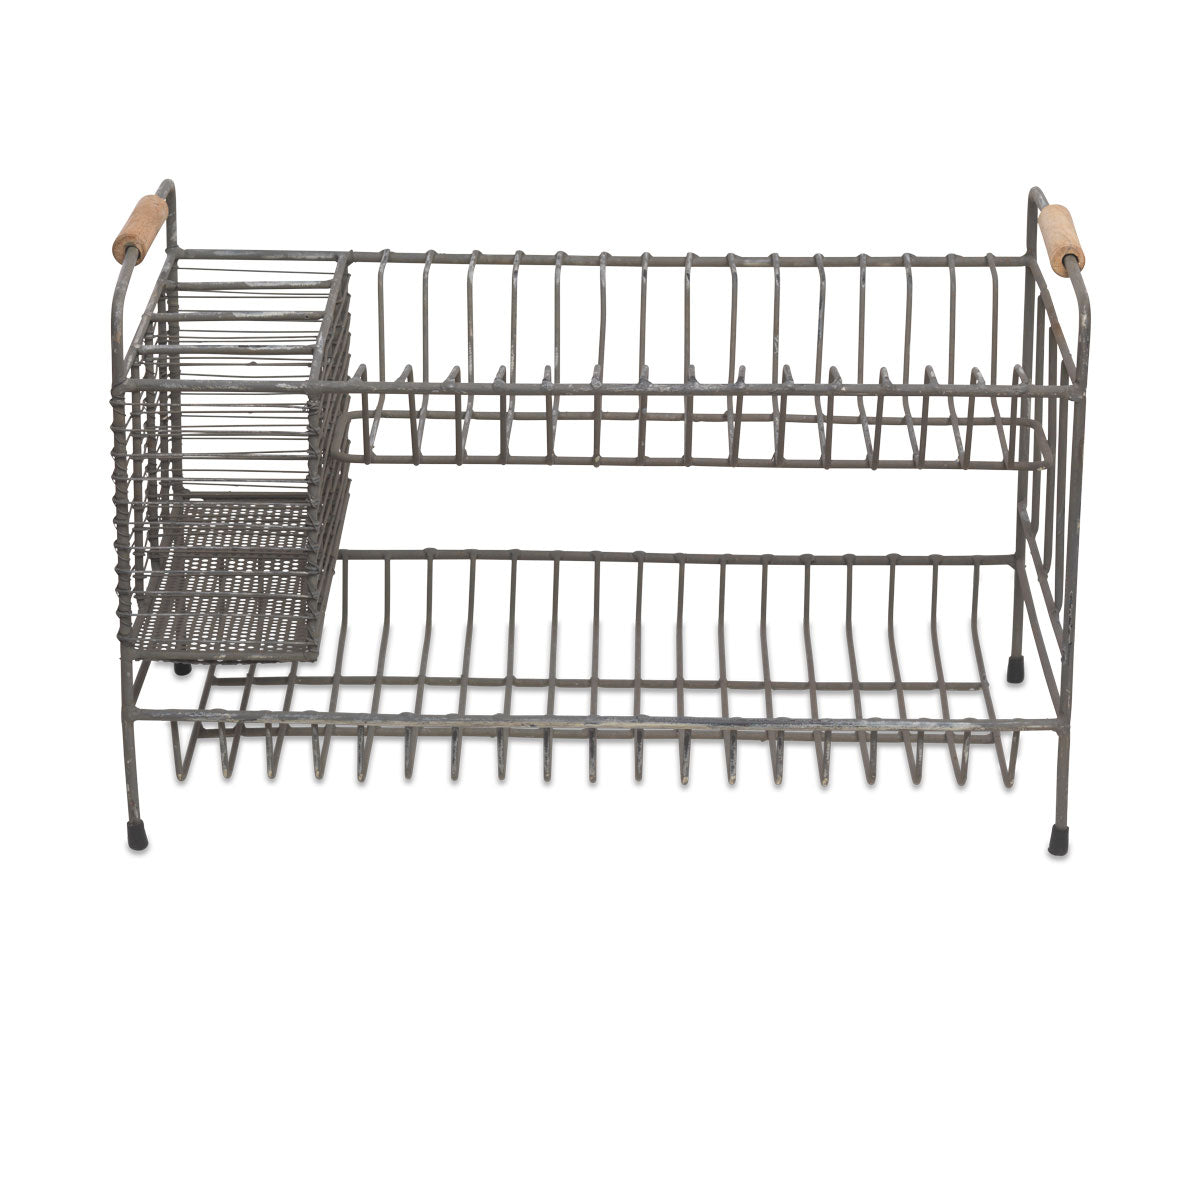 Nkuku Tilmo Dish Rack Industrial double tier